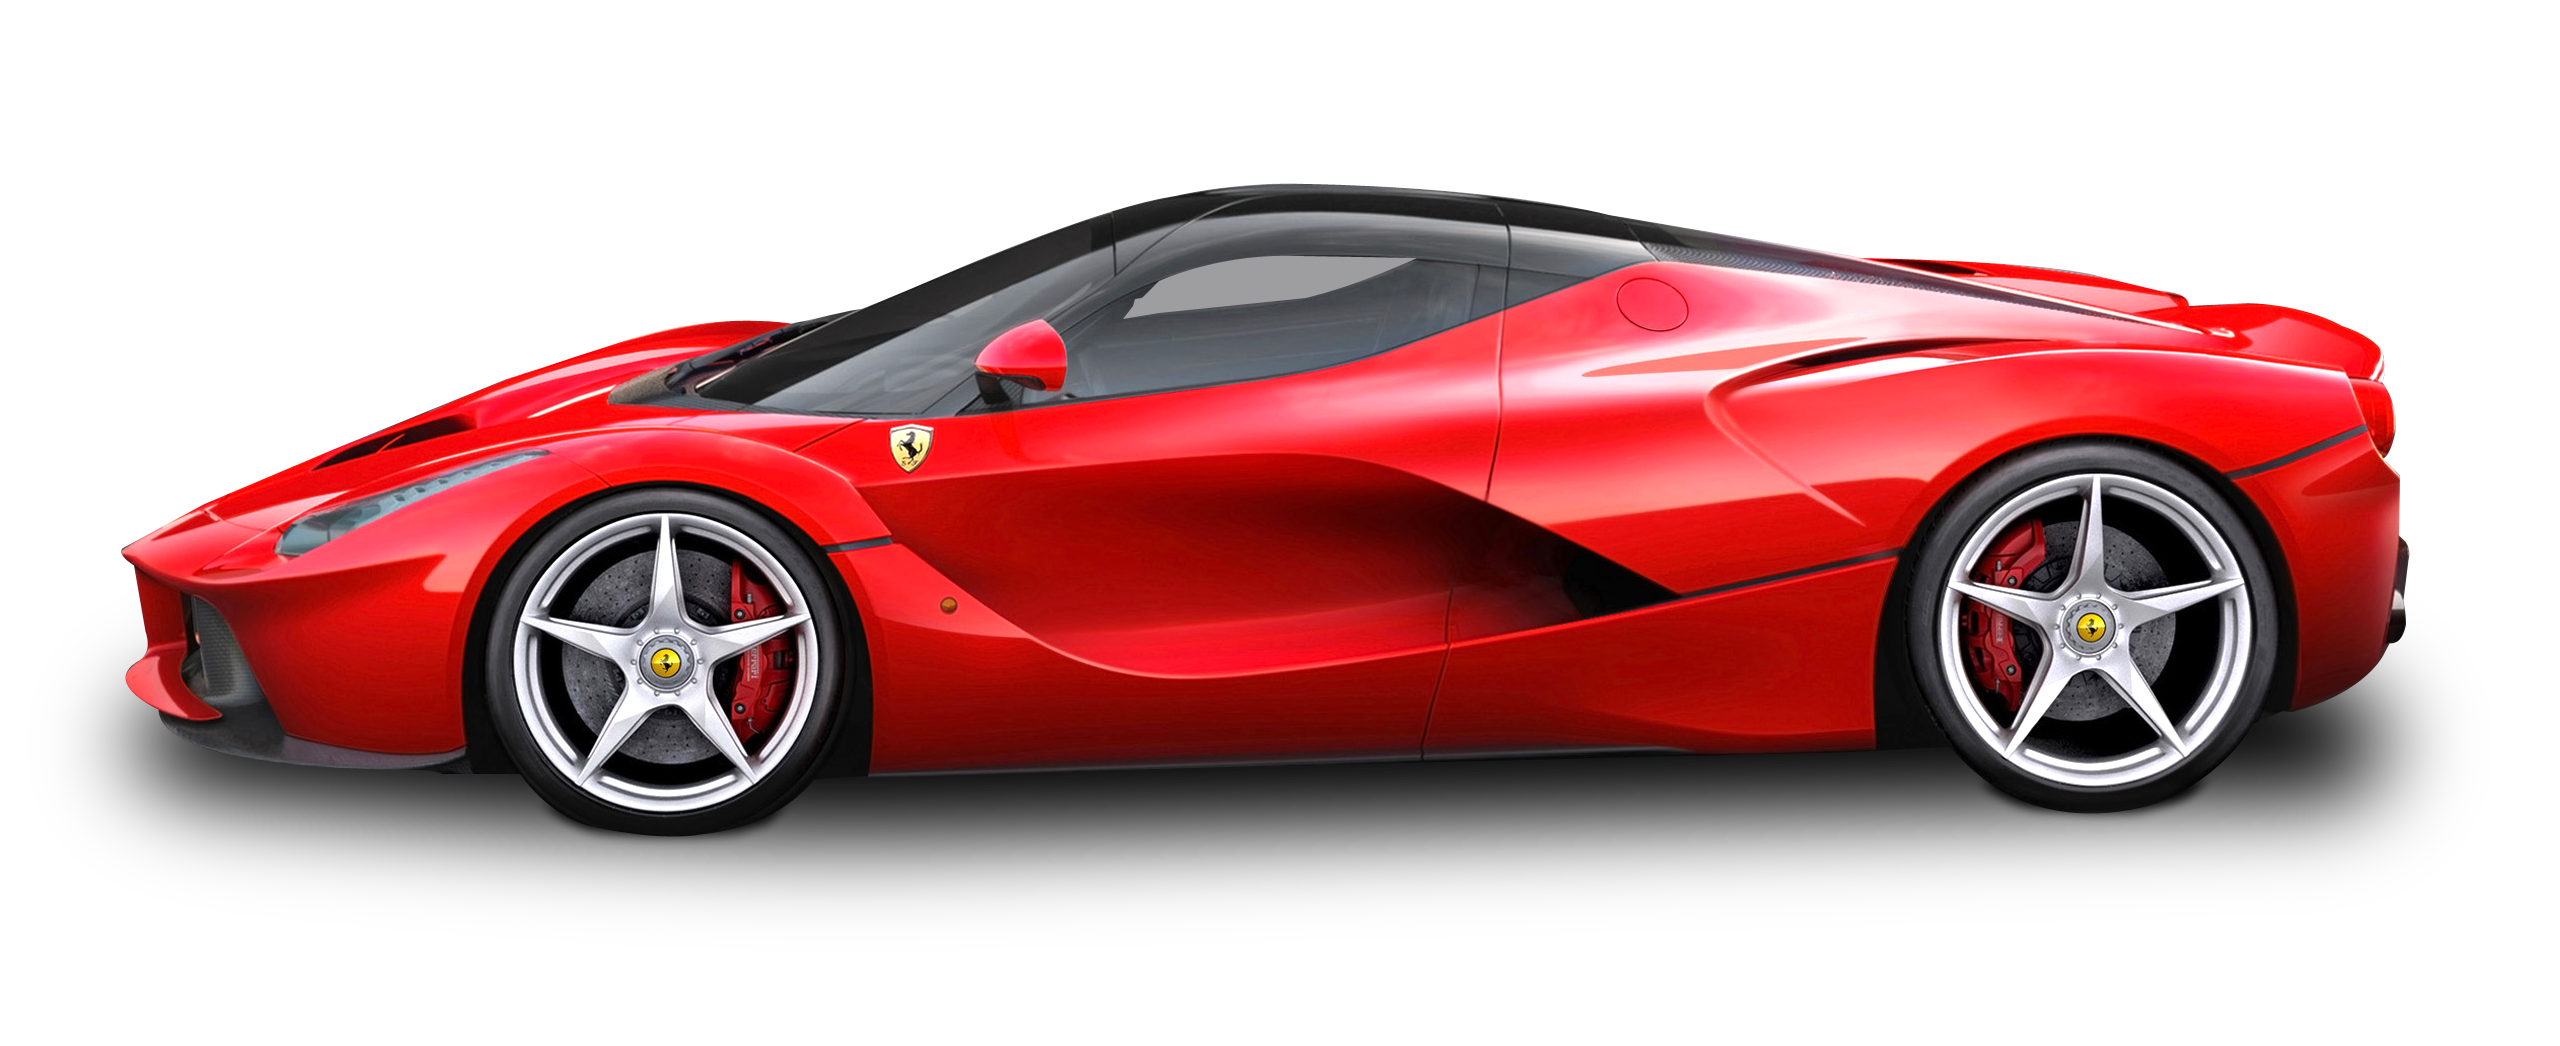 Red sports car png. Transparent pictures free icons